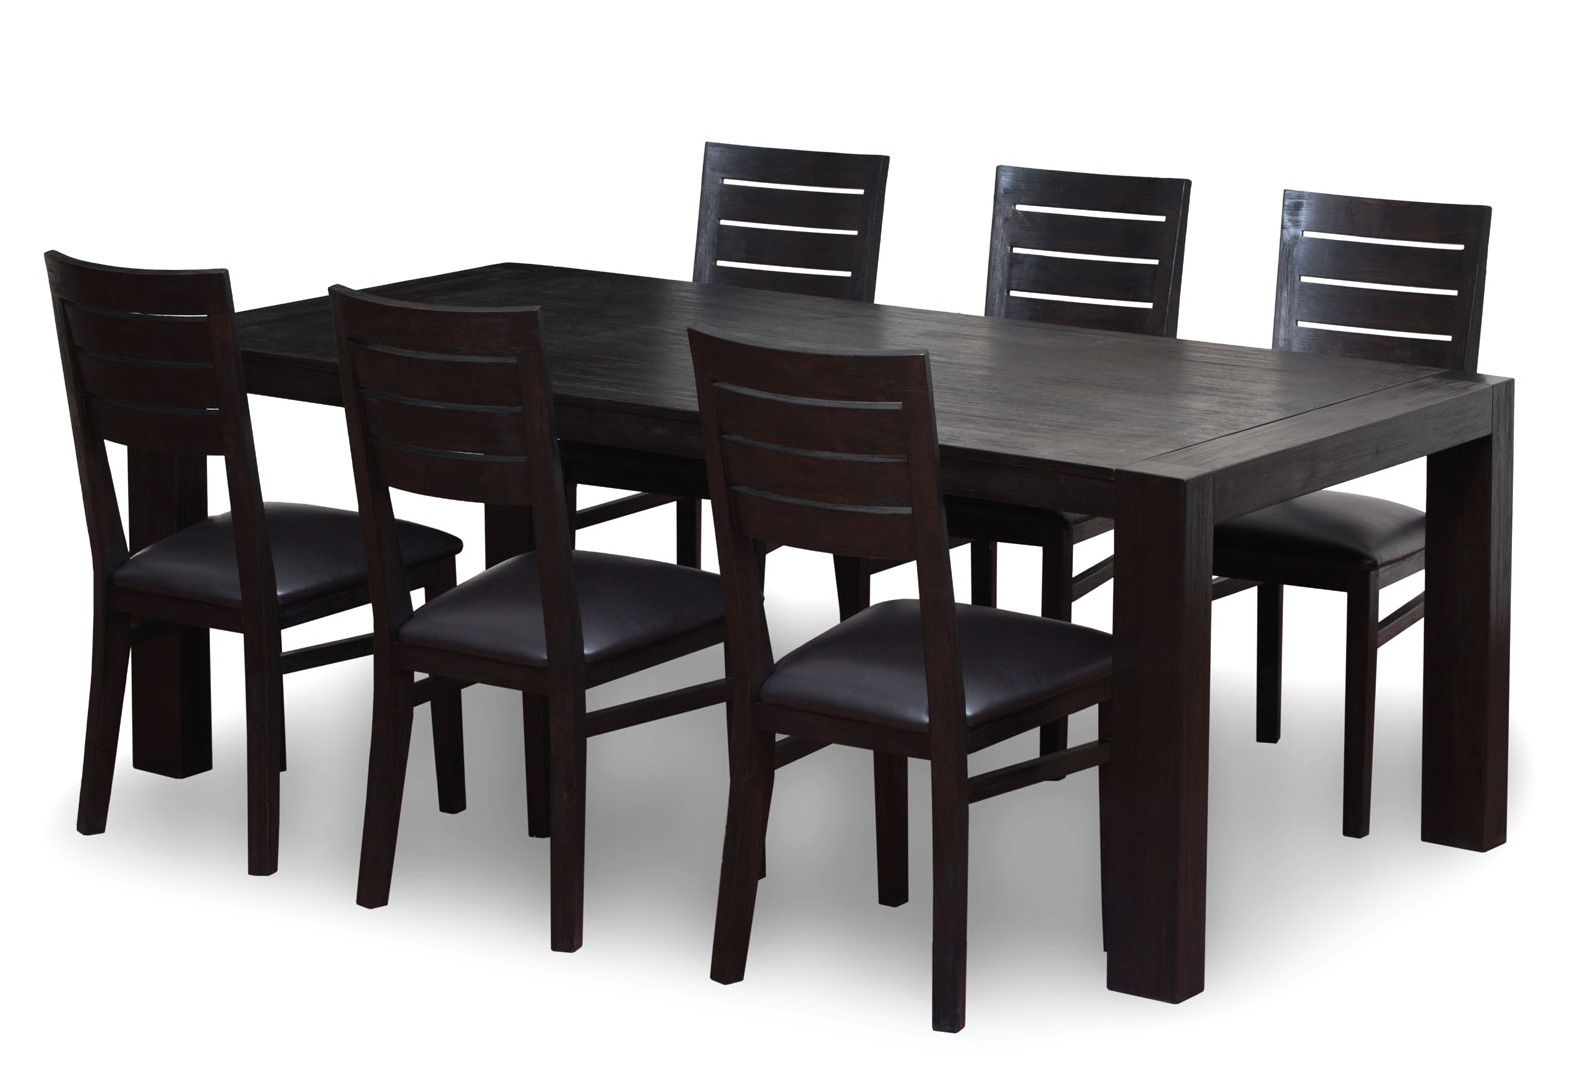 Remarkable Black Dining Room Table 1591 x 1069 · 217 kB · jpeg